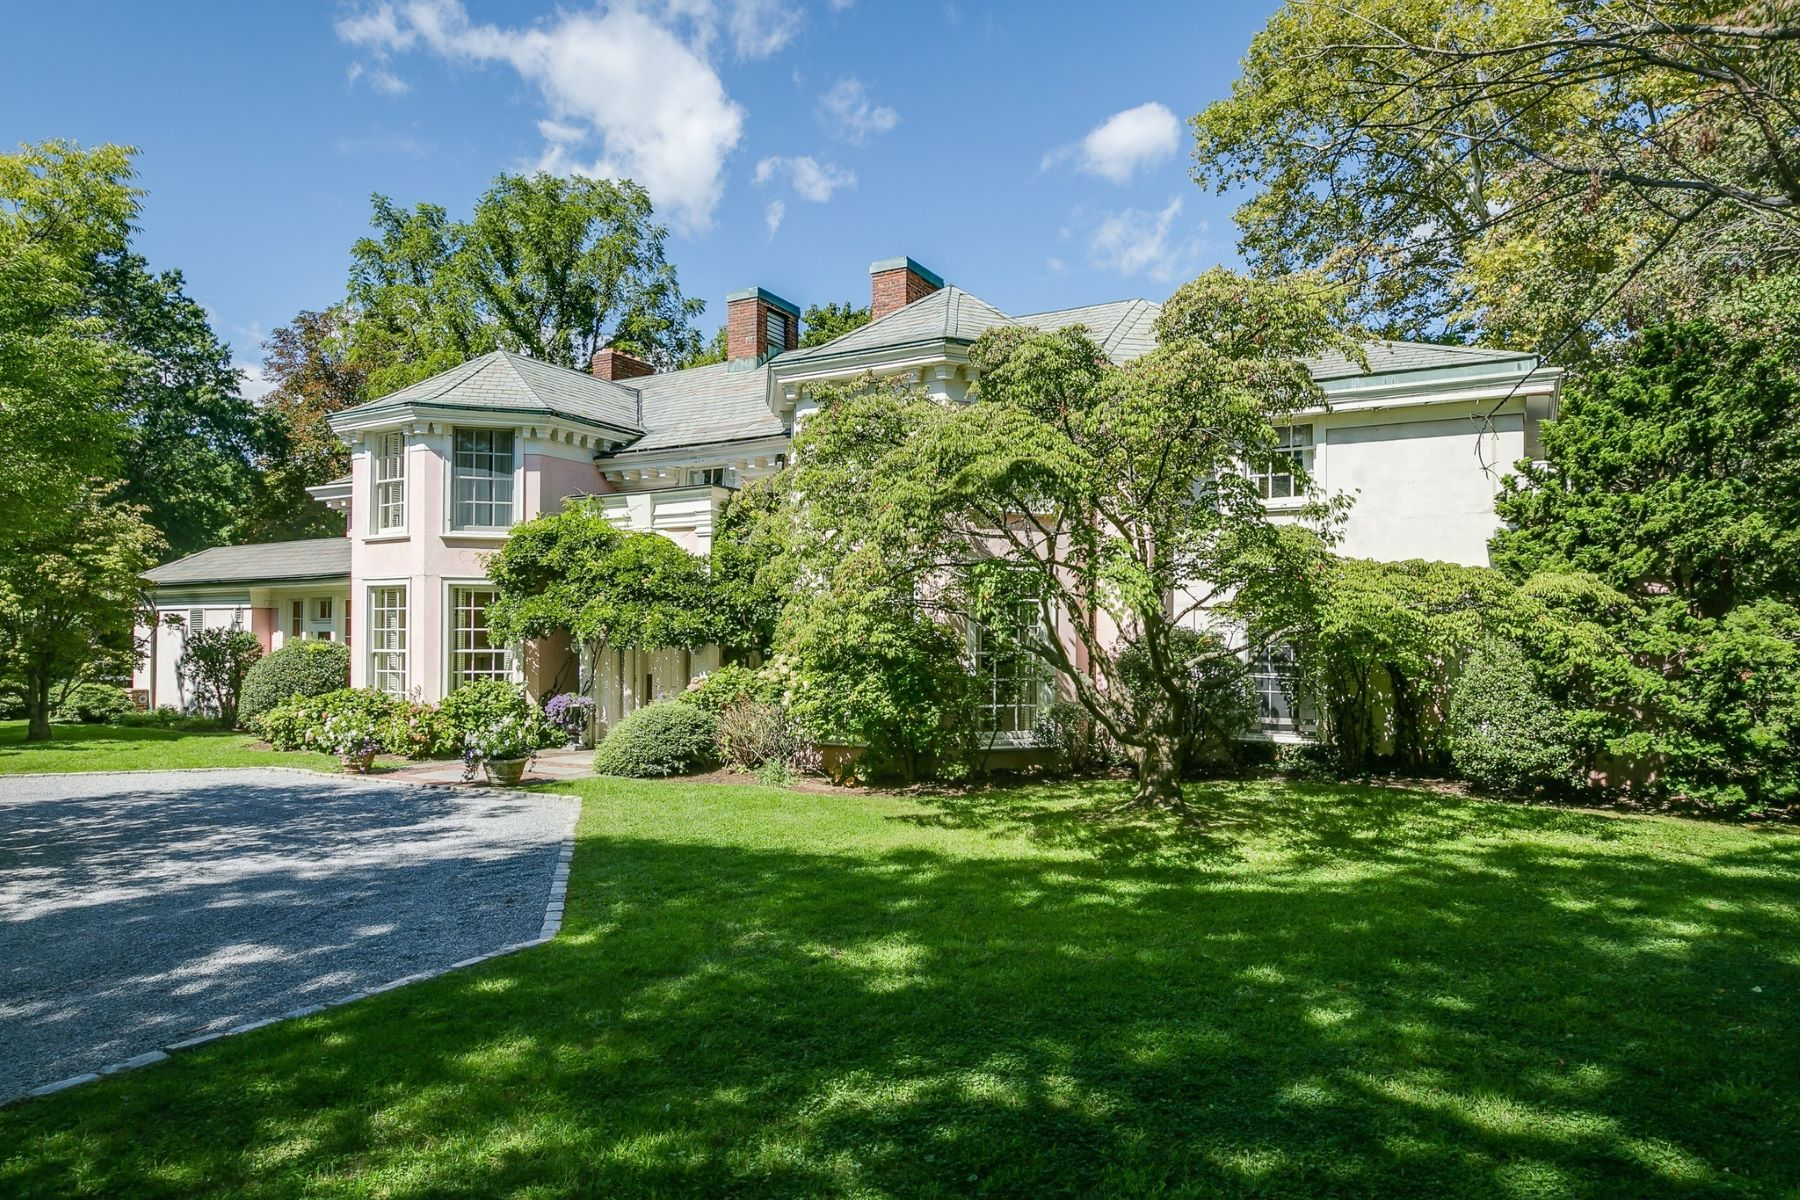 Single Family Homes for Active at Glen Cove 1 Pond Rd Glen Cove, New York 11542 United States